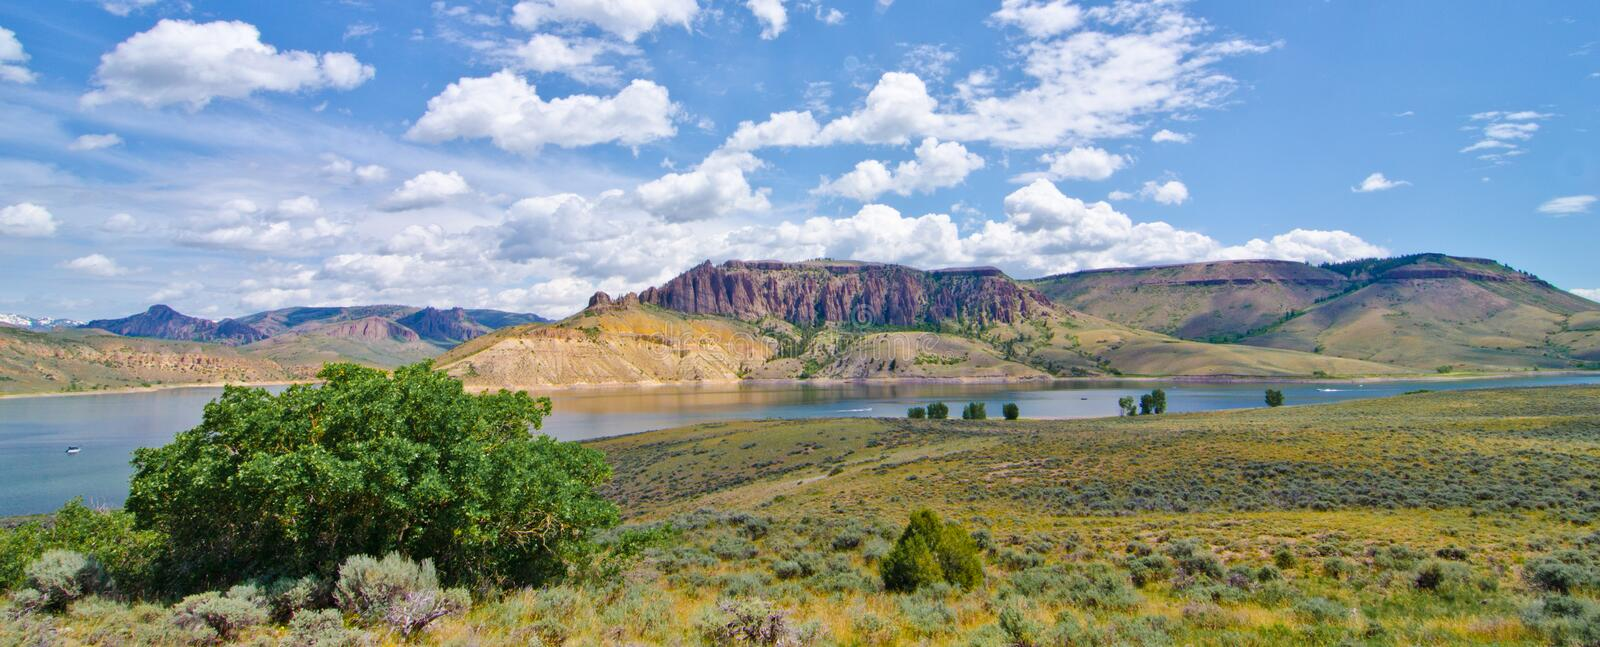 Blue Mesa Reservoir in the Curecanti National Recreation Area in Southern Colorado stock photos